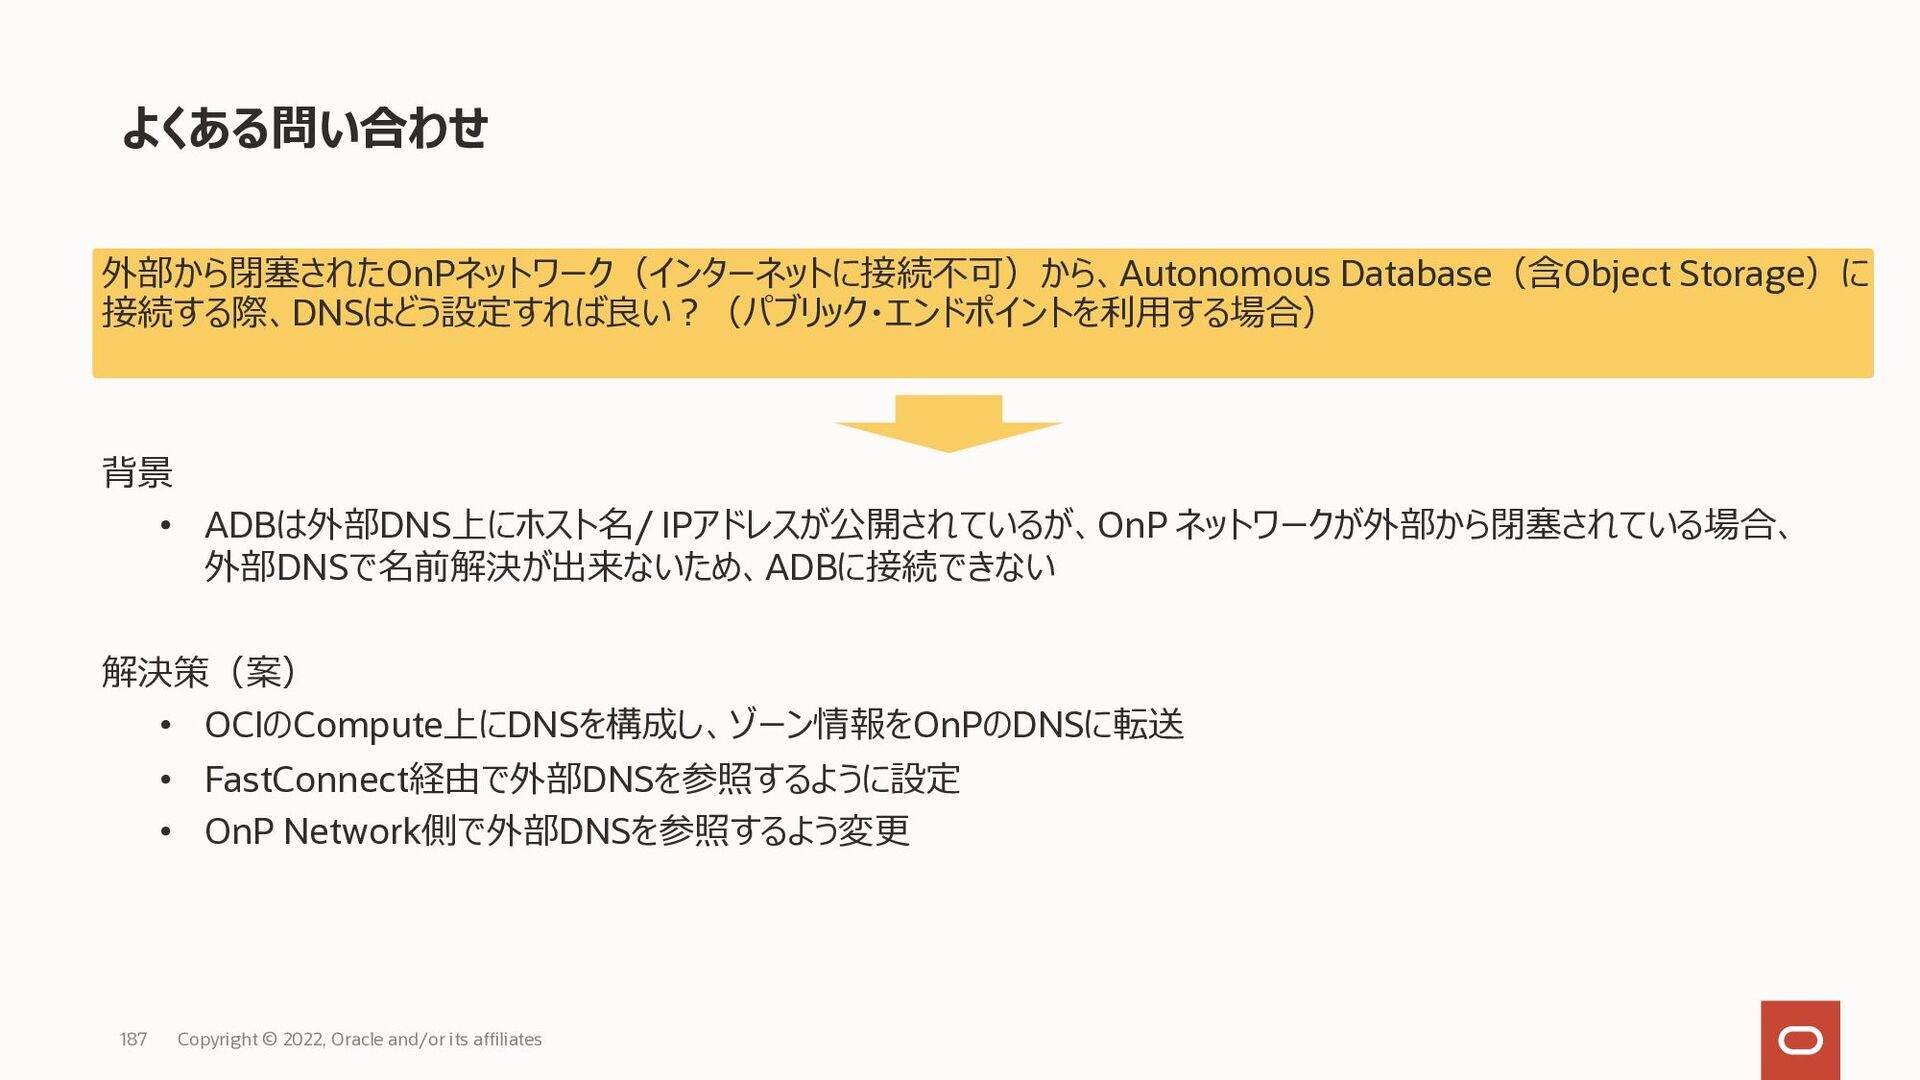 187 Copyright © 2021, Oracle and/or its affilia...